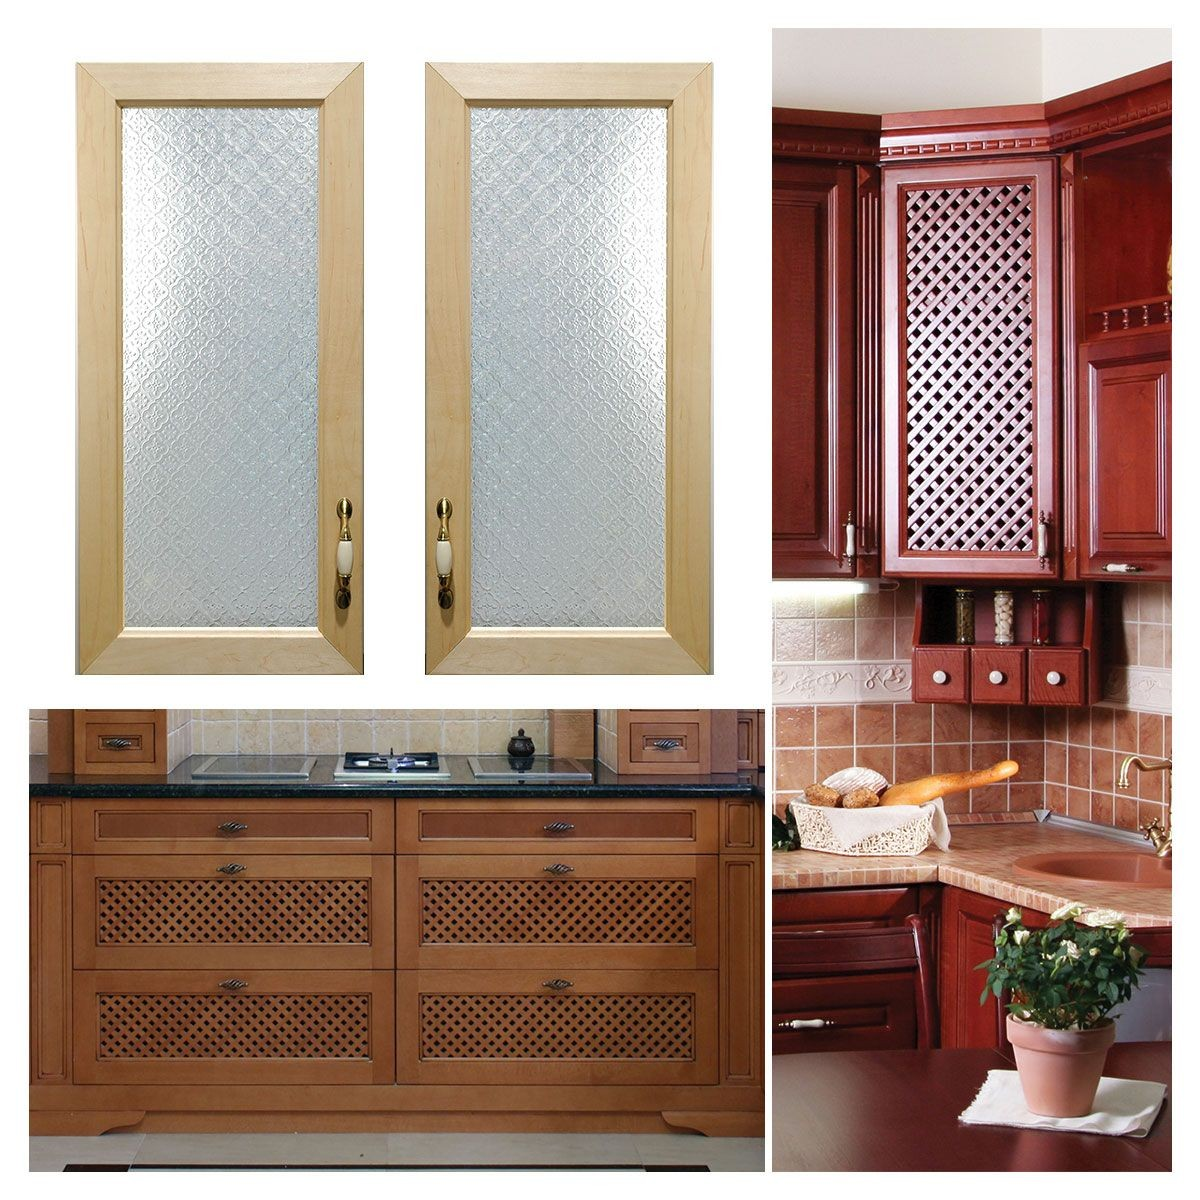 Decorative Cabinetry Components